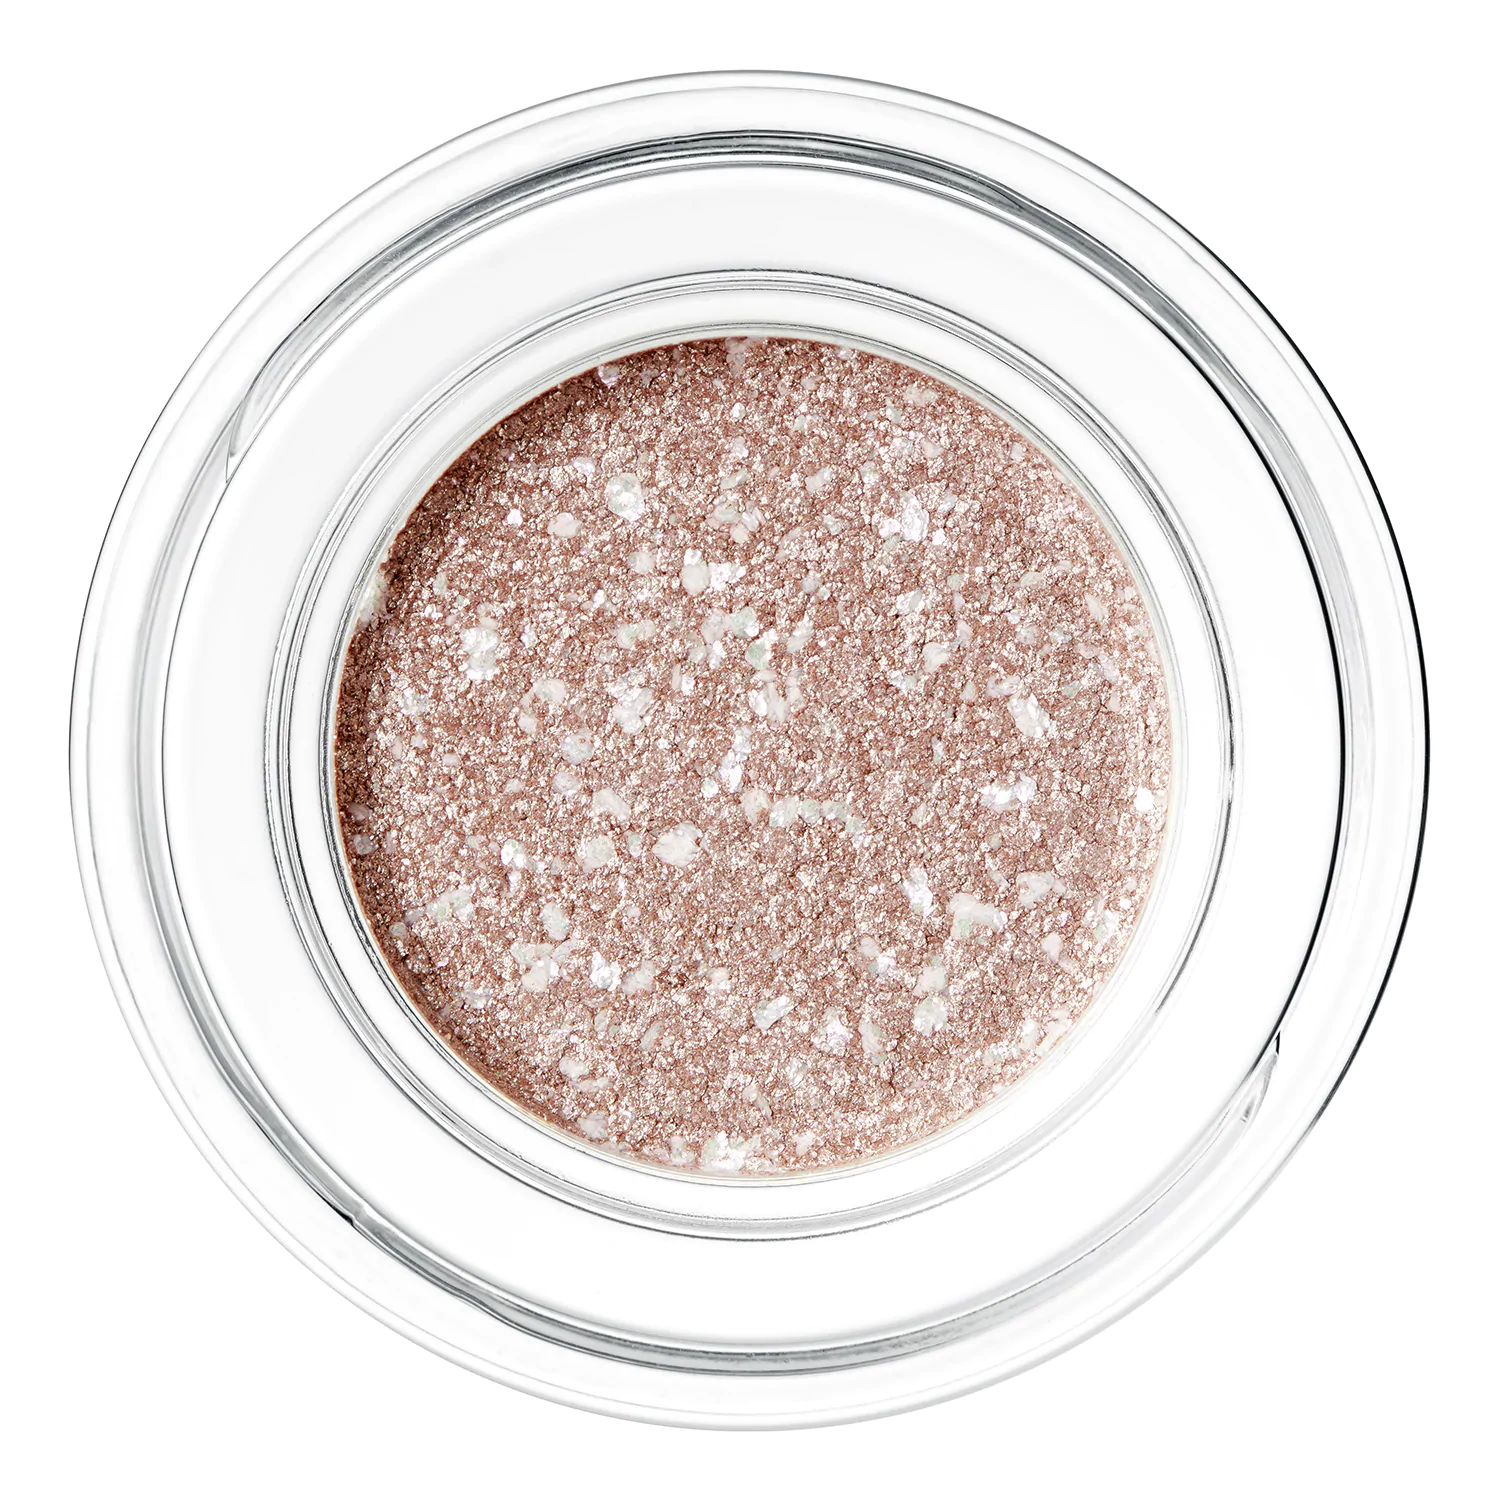 CIATE - MARBLED METALS METALLIC GLITTER EYESHADOW